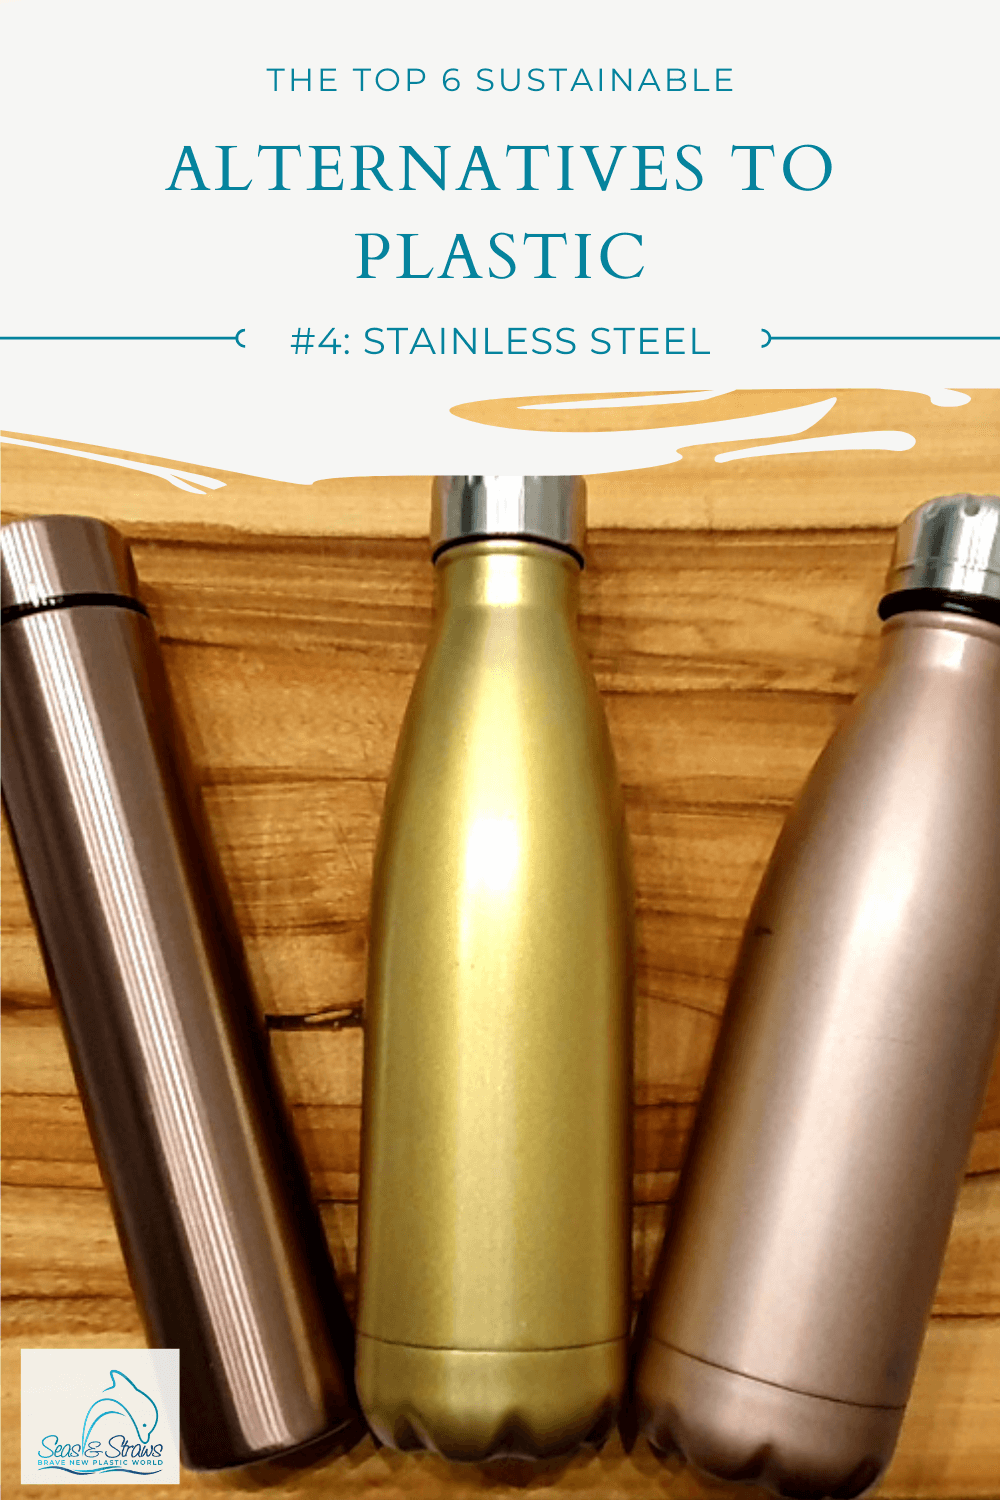 The Top 6 Sustainable Alternatives to Single-Use Plastic - Stainless Steel